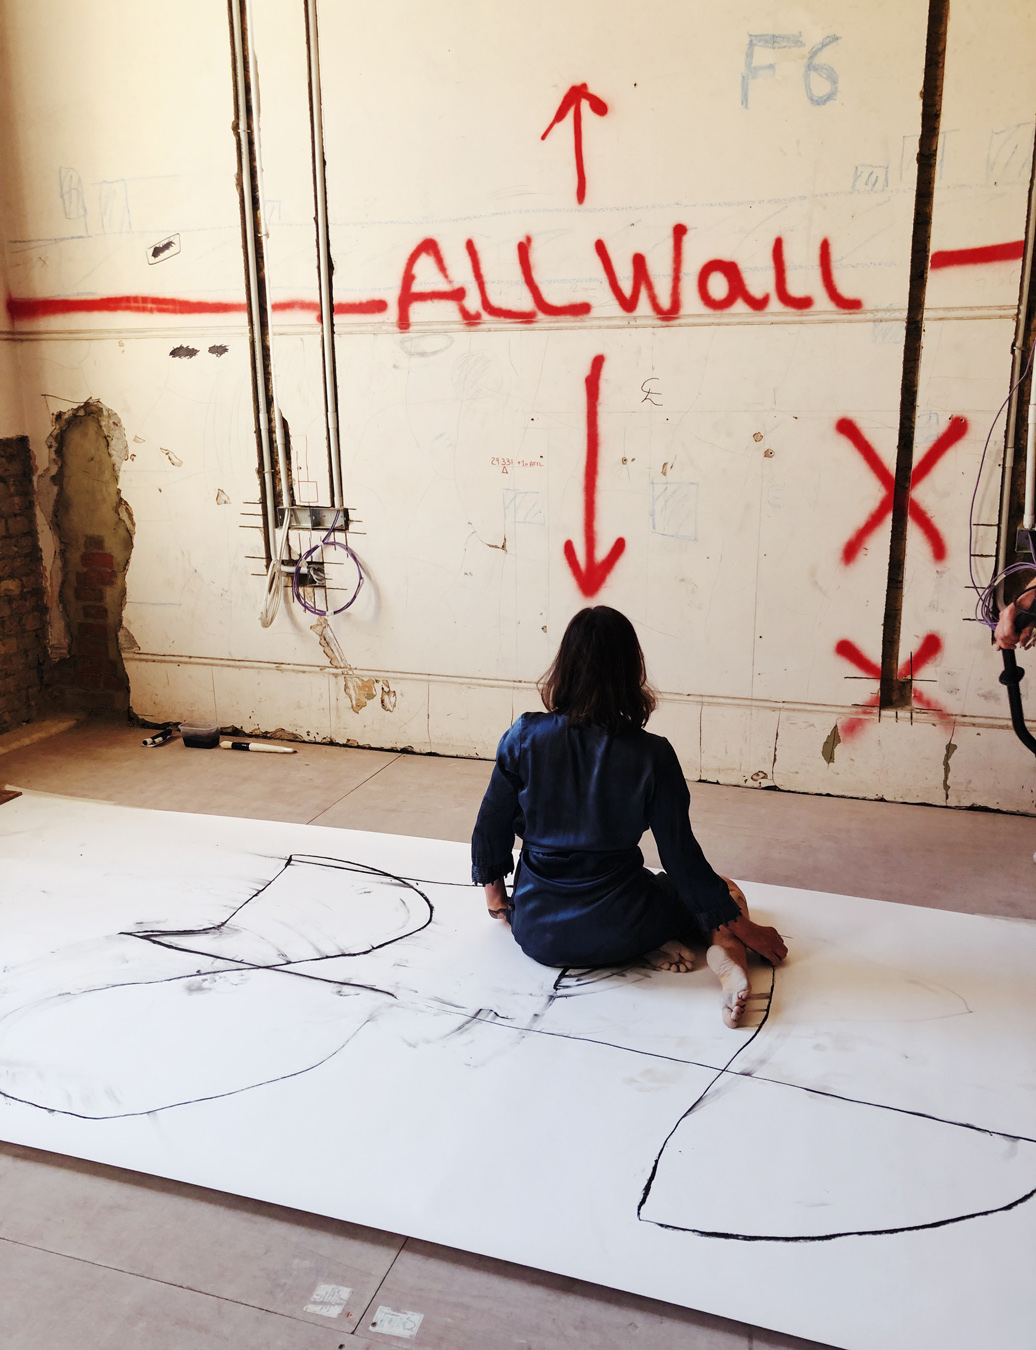 Woman sitting barefoot on canvas, facing wall with pray painted sign that says